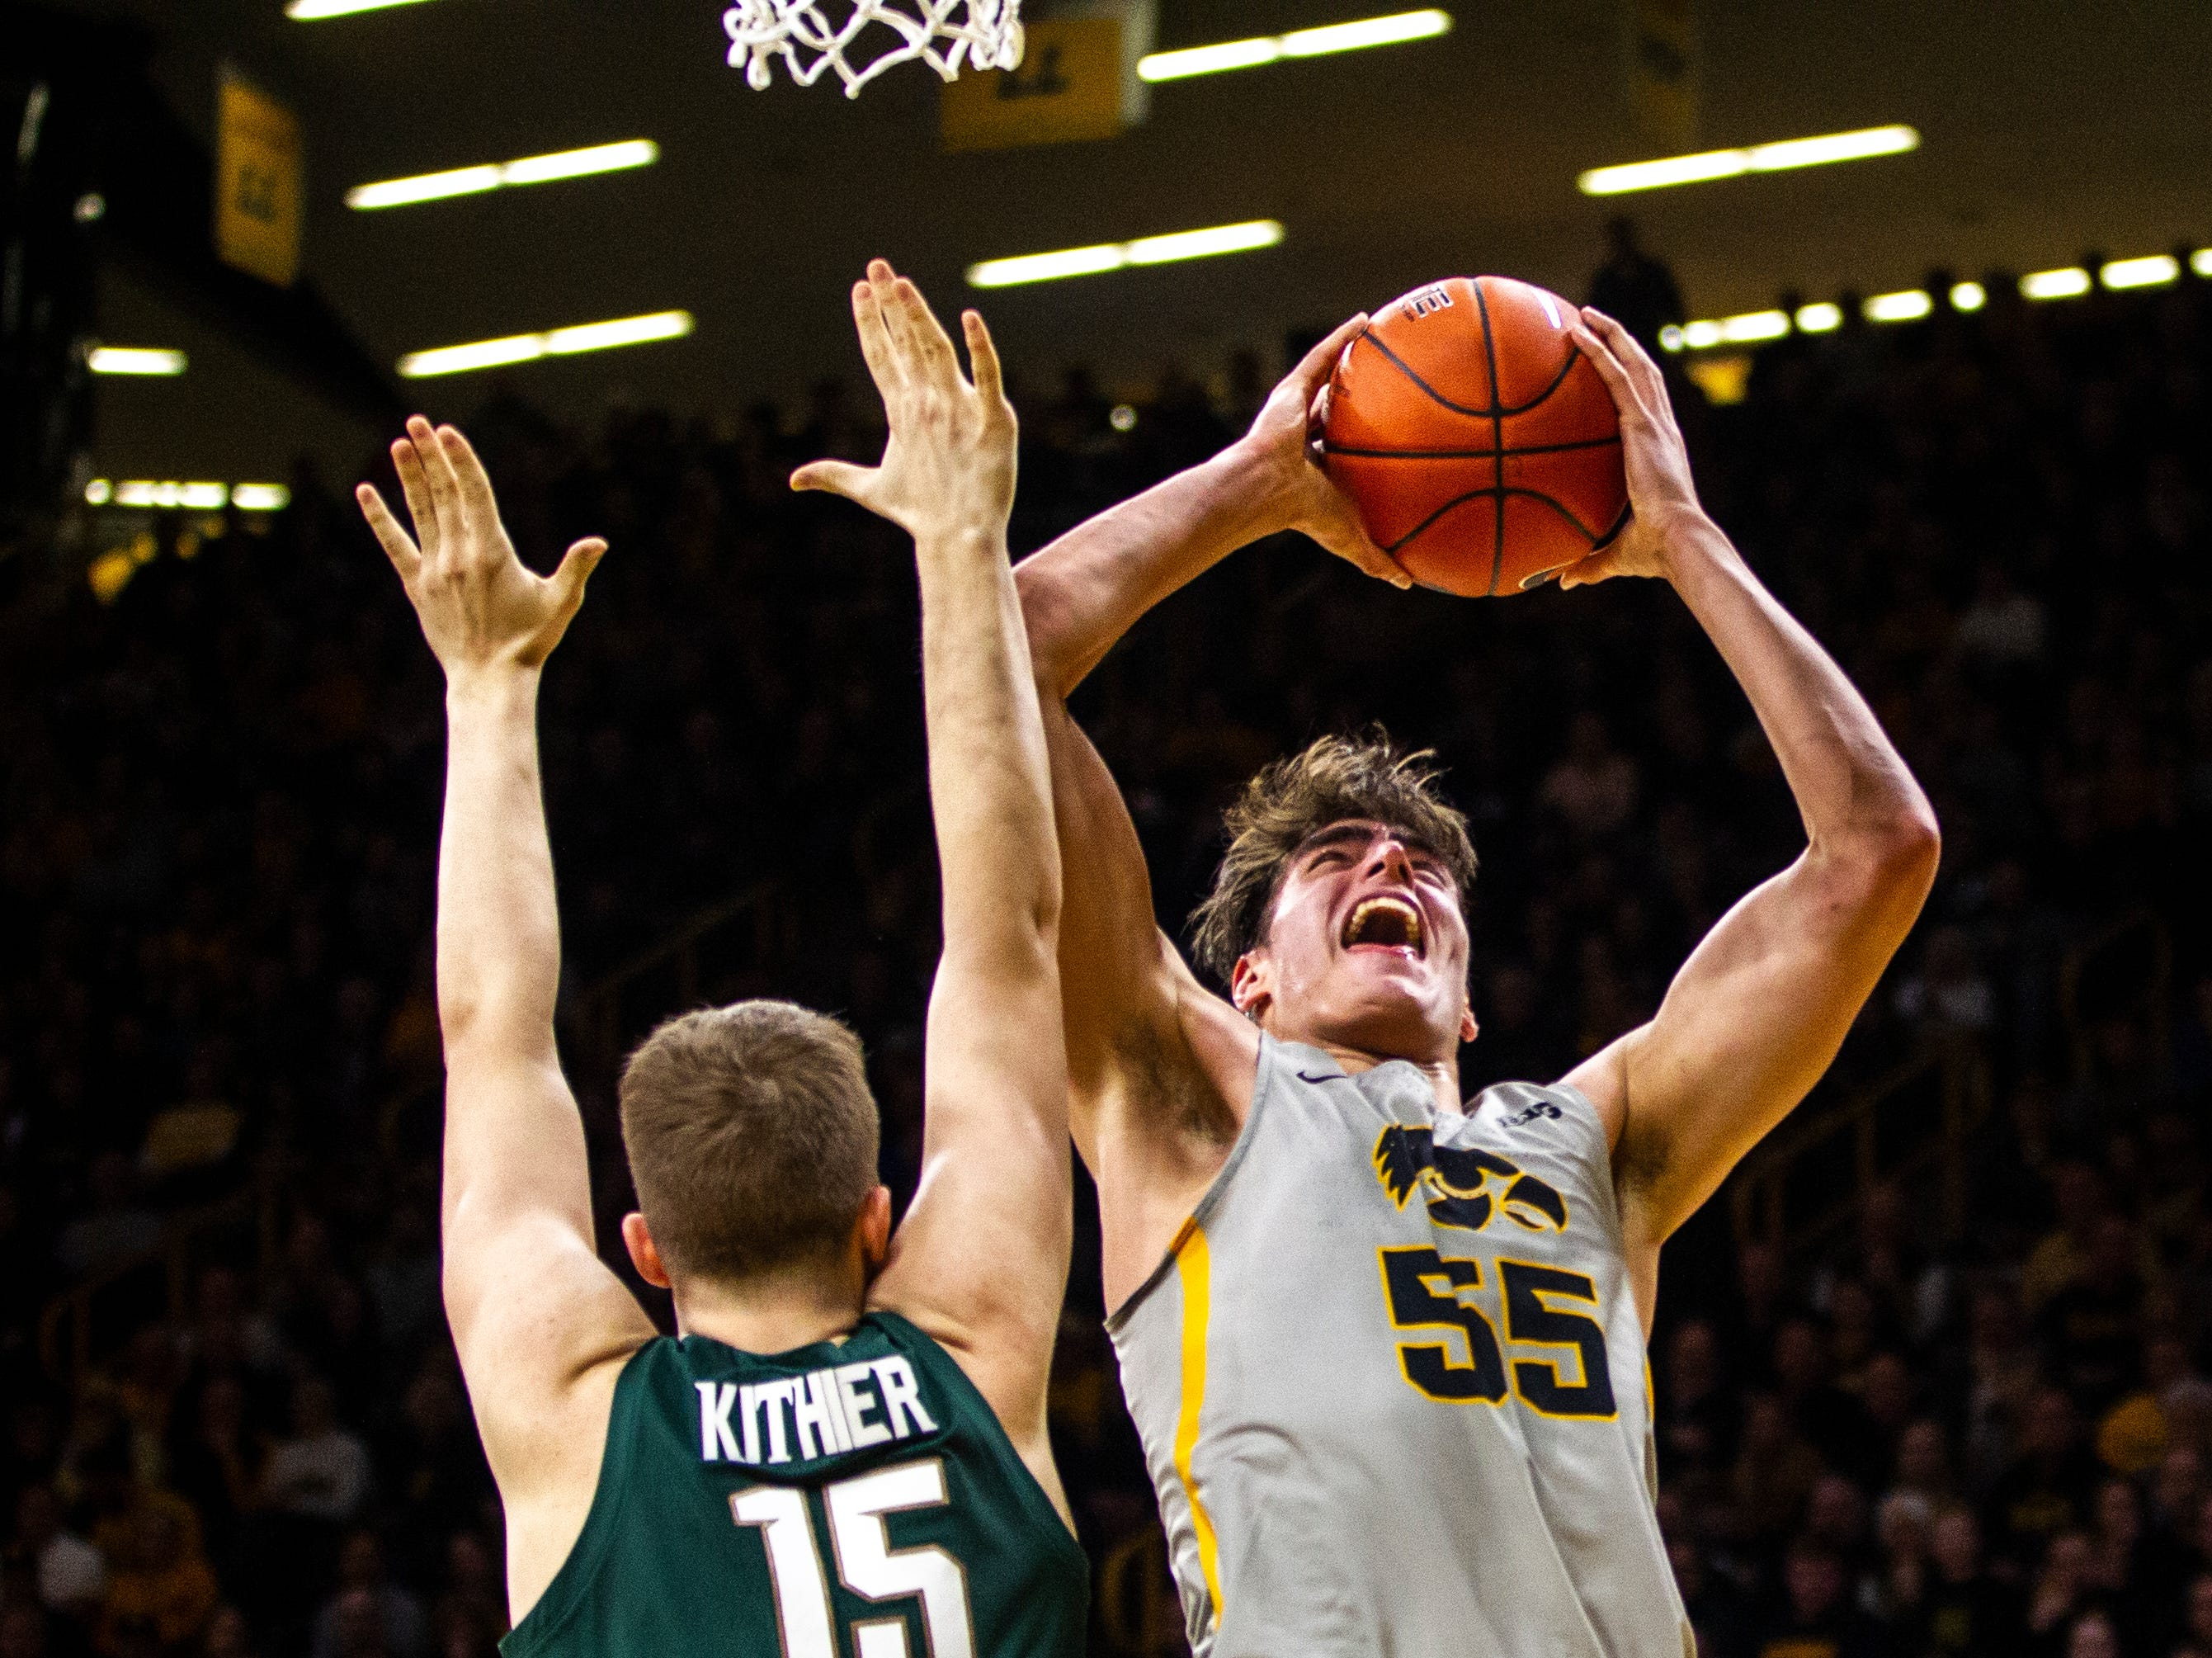 Iowa forward Luka Garza (55) drives to the basket during a NCAA Big Ten Conference men's basketball game on Thursday, Jan. 24, 2019, at Carver-Hawkeye Arena in Iowa City, Iowa.